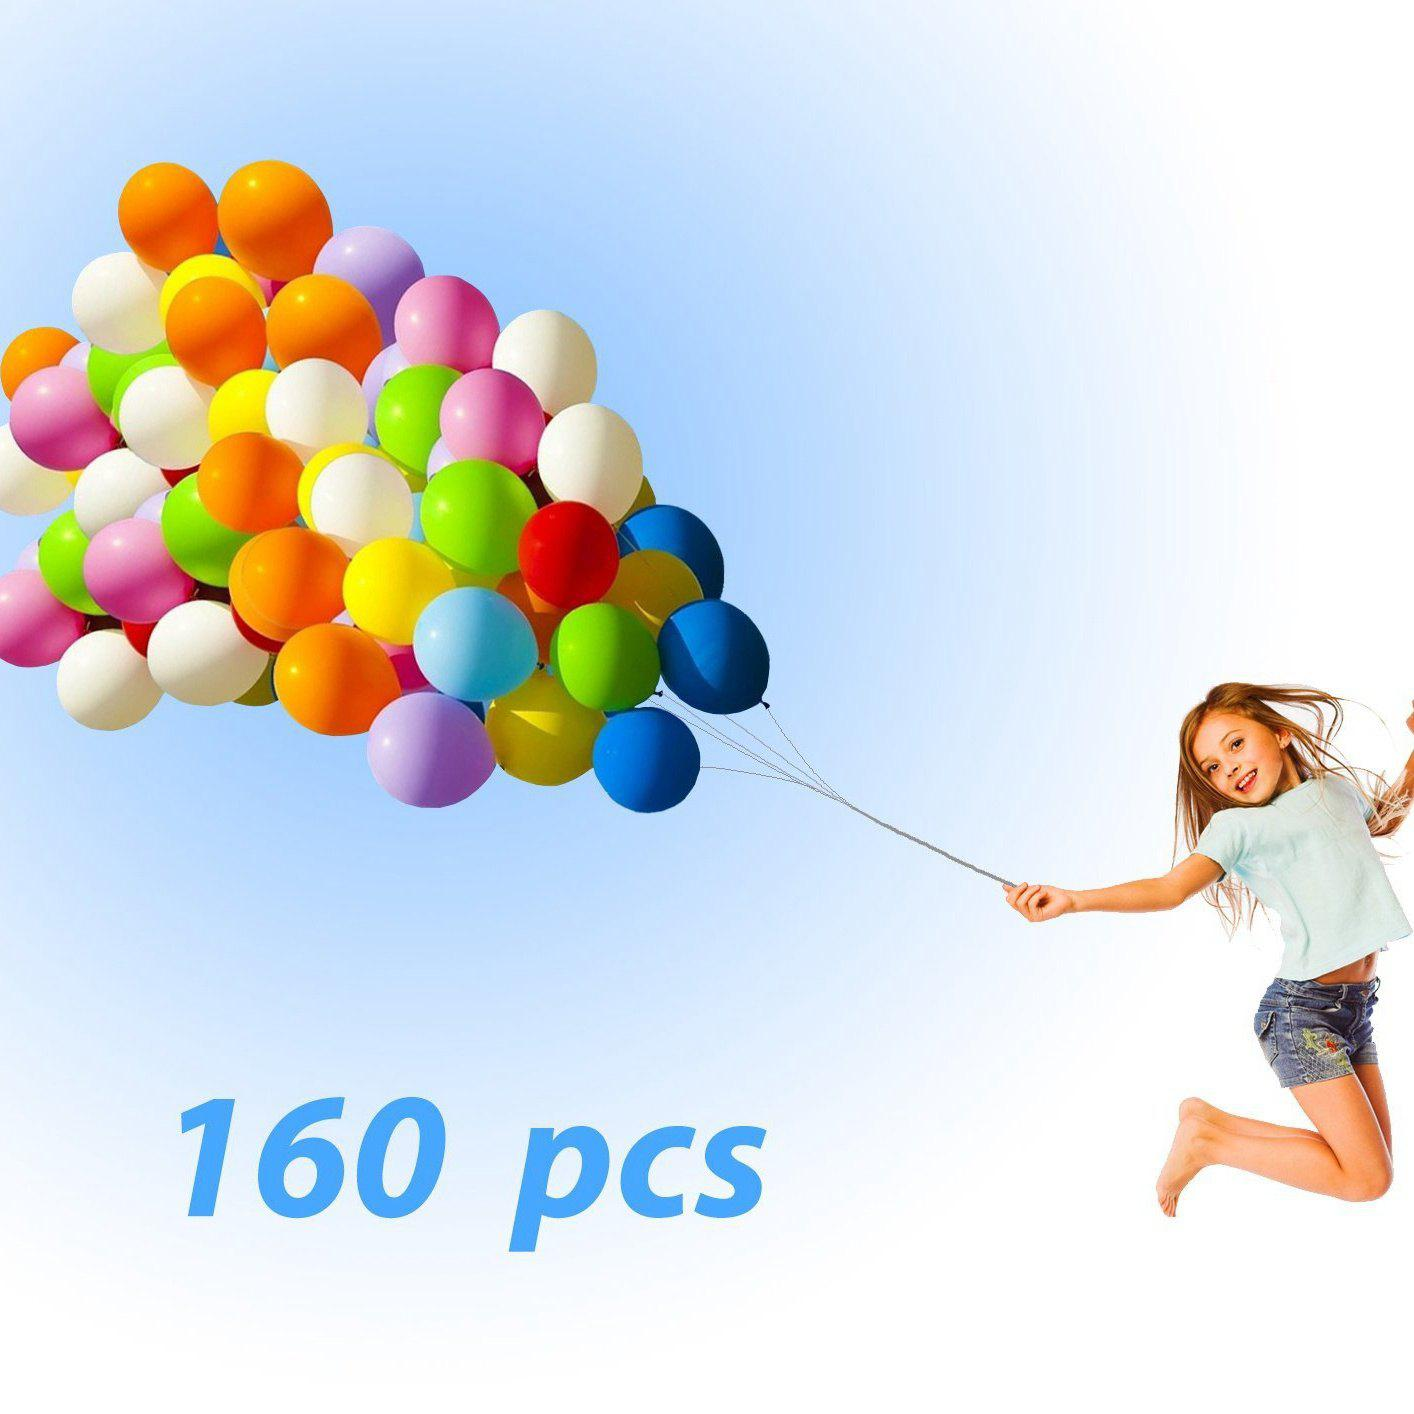 Fashion Latex Balloons 160PCs Party Balloons Assorted Color Thick Premium Quality 12 inches Decorations for Birthday Wedding Graduation Ceremony